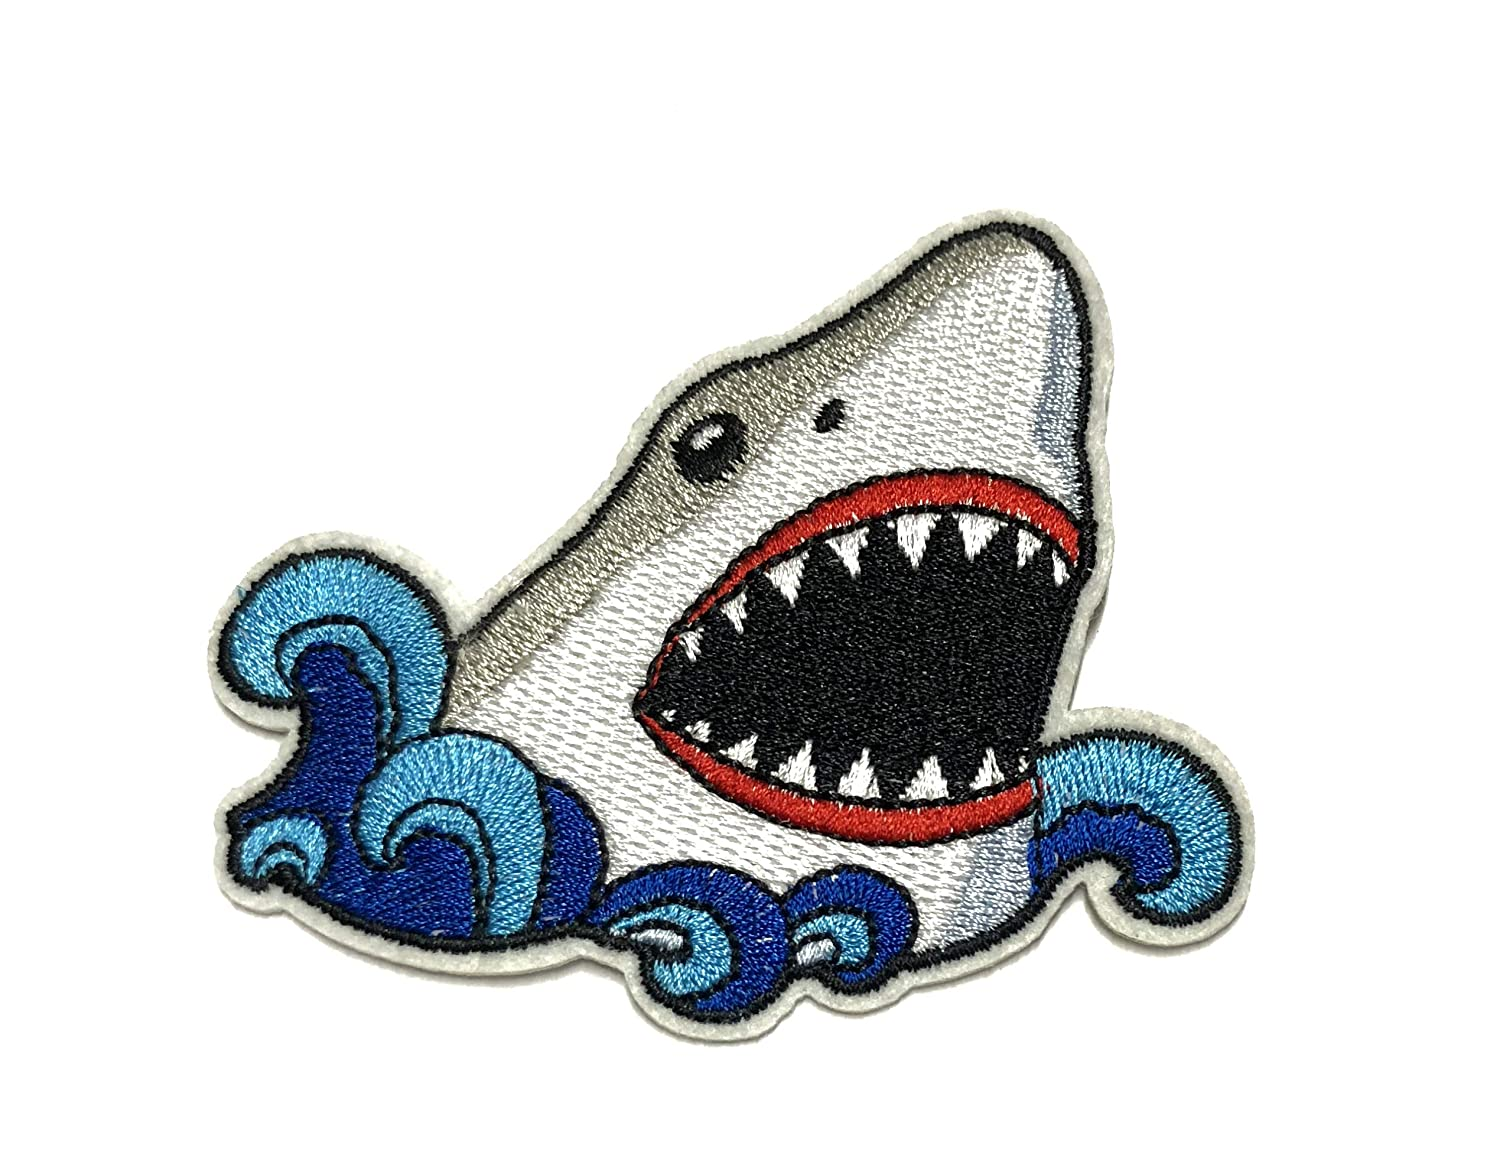 Great White Shark Embroidered Patch Sea World Ocean Series Sharks Whales Fish Meg Megalodon Aquarium Zoo Theme Iron-on or Sew-on Emblem Badge DIY Appliques Application Fabric Patches